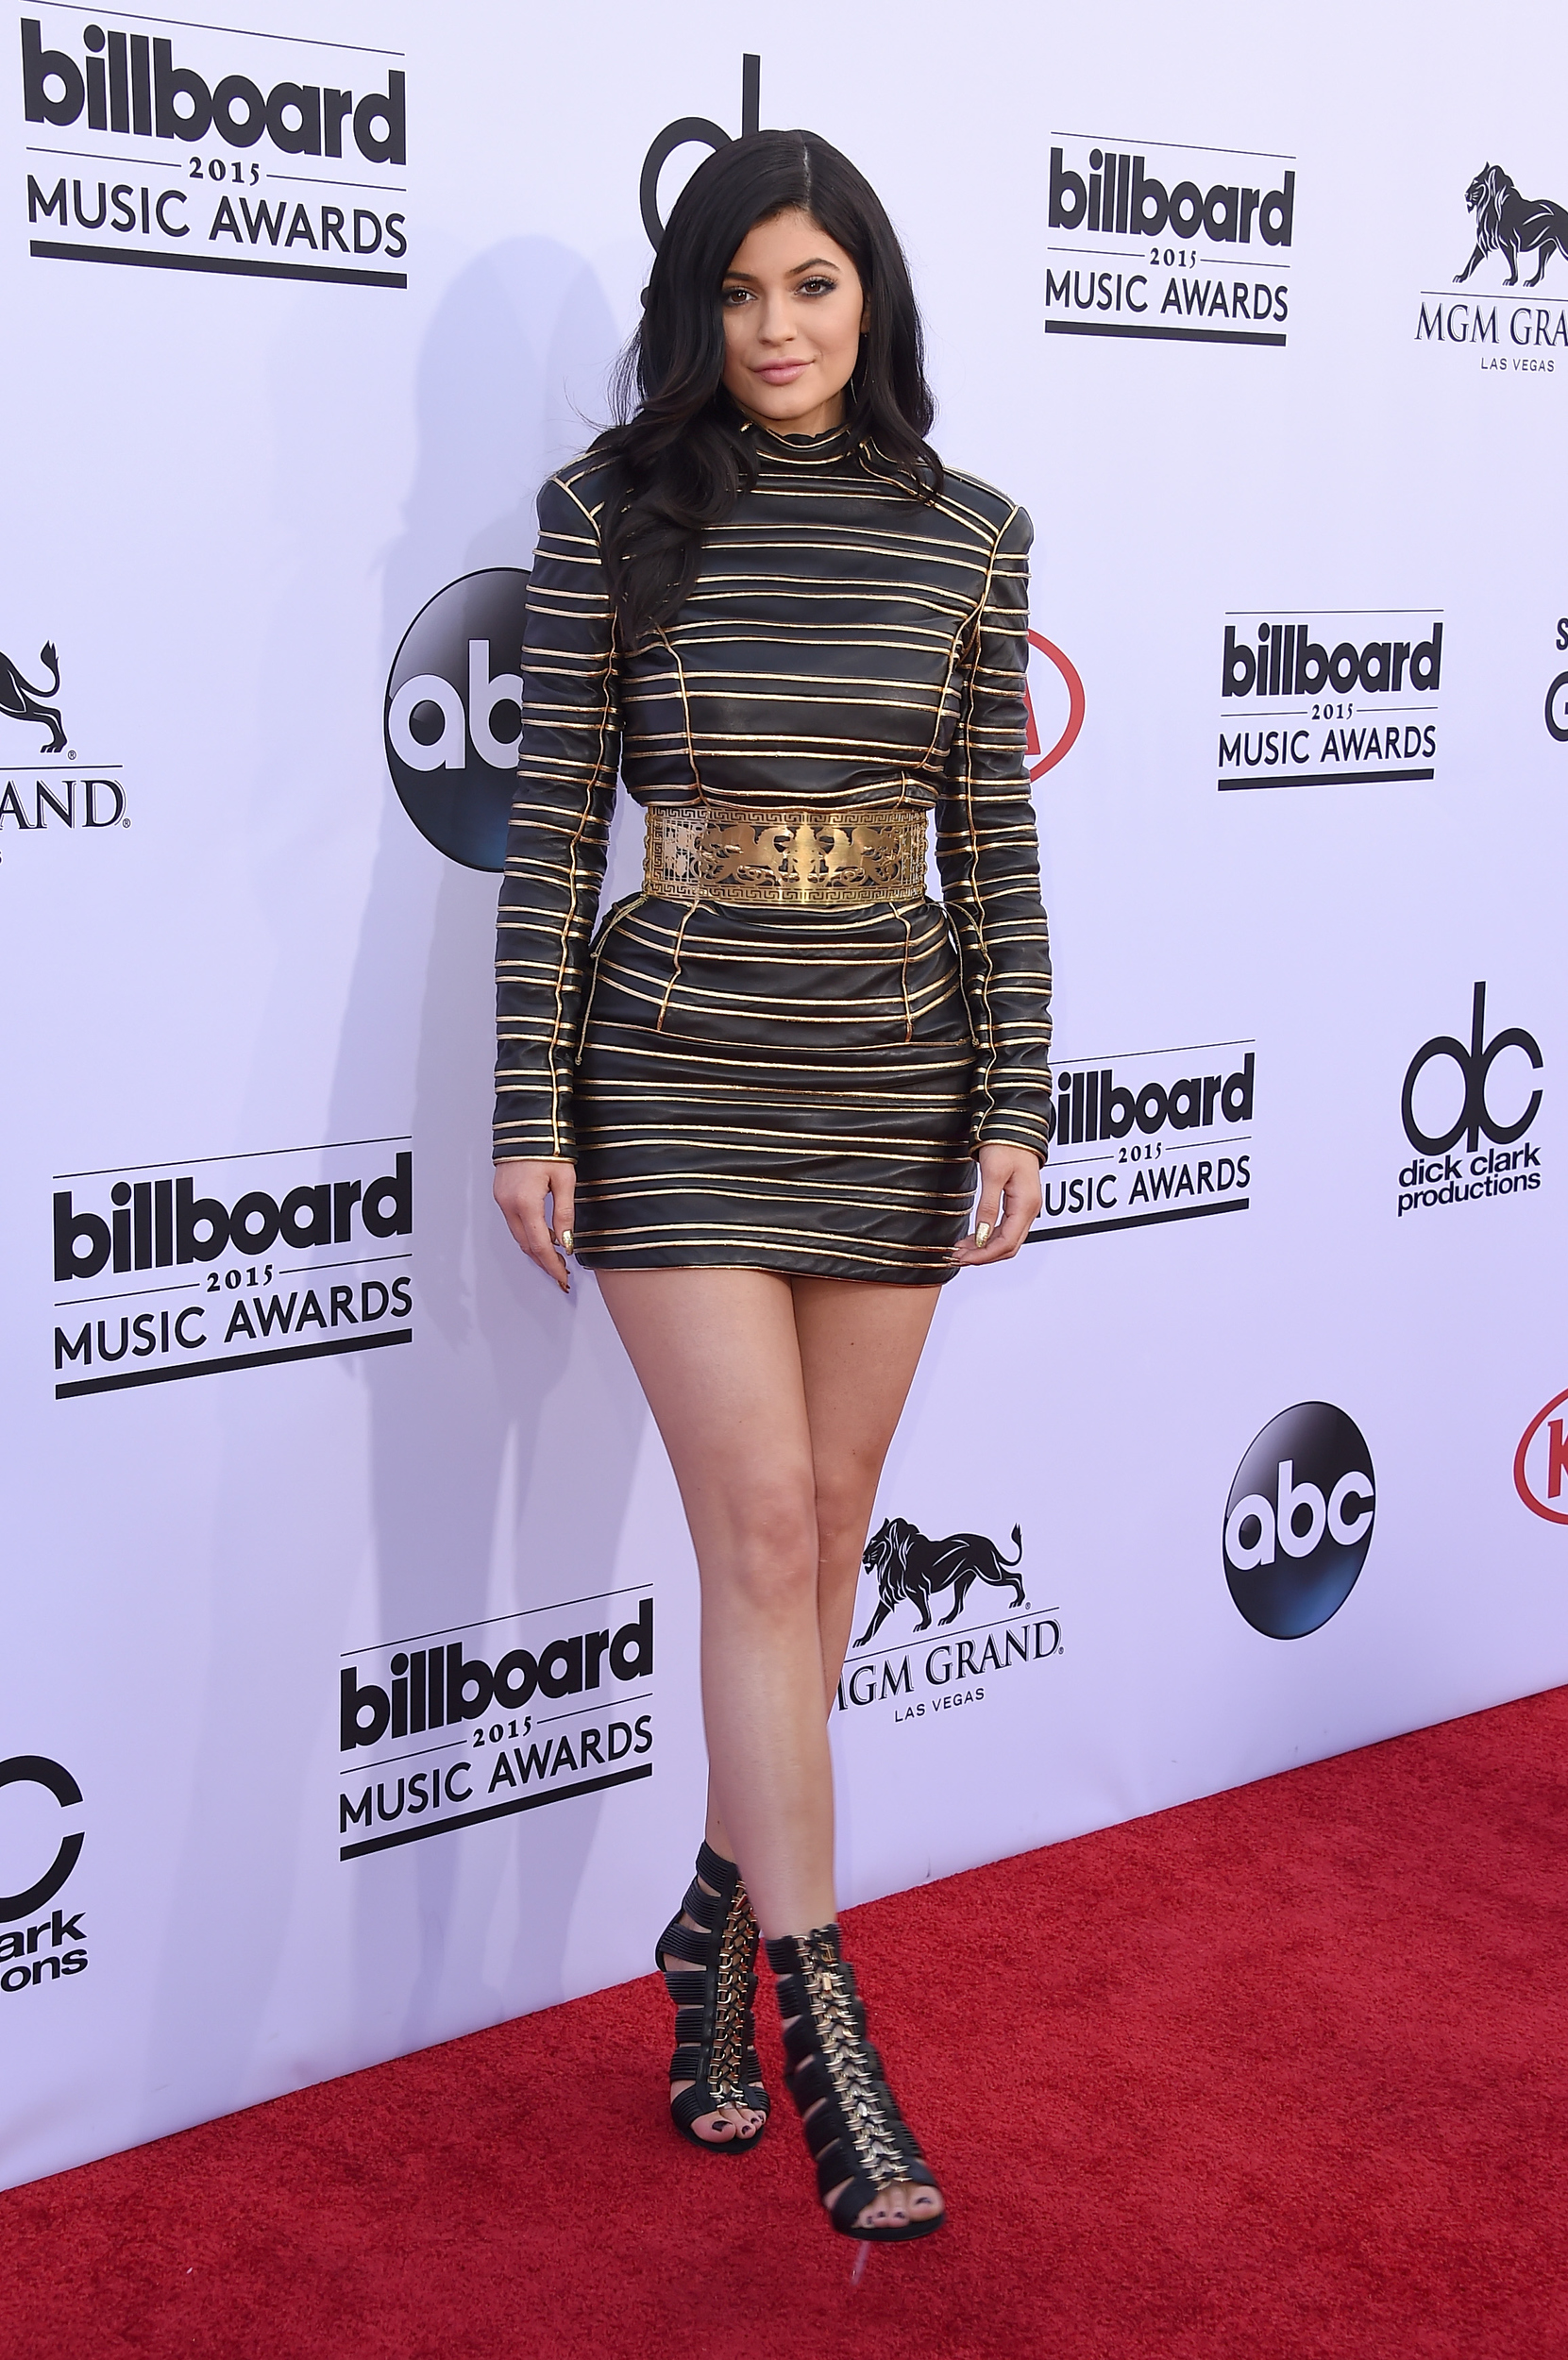 Kendall And Kylie Jenner Get Booed At Billboard Music